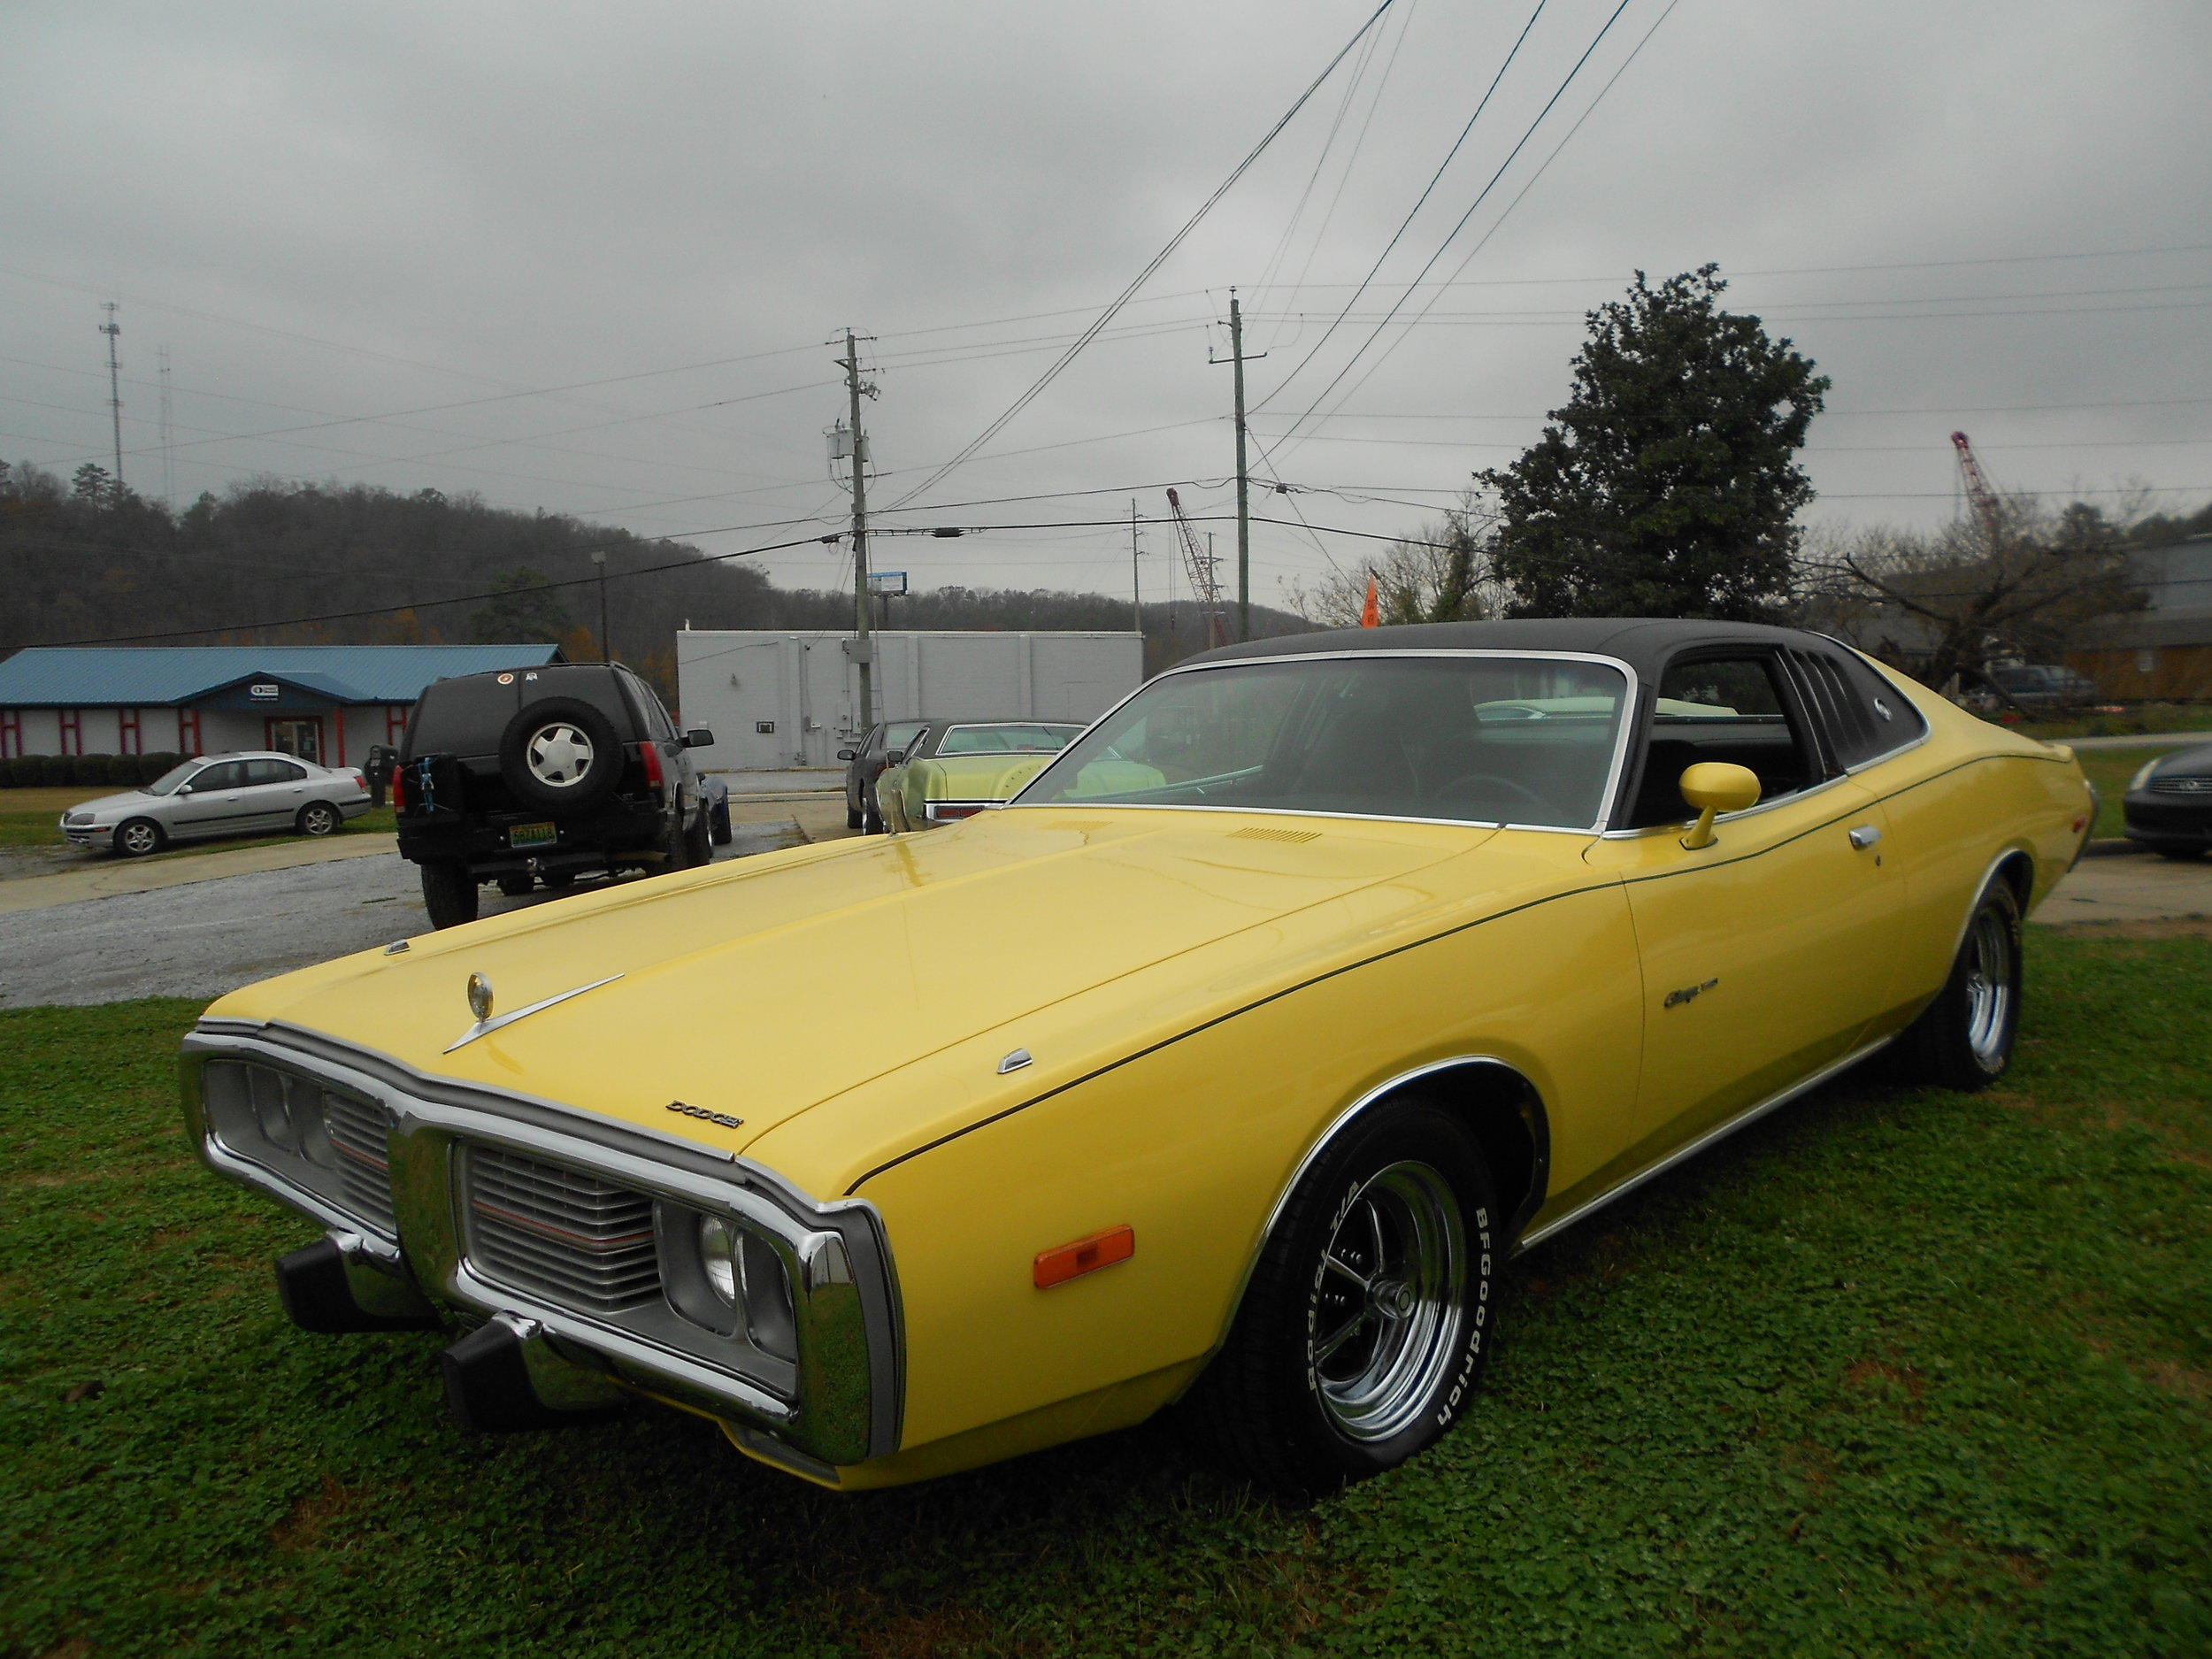 1973 Charger SE Brougham -